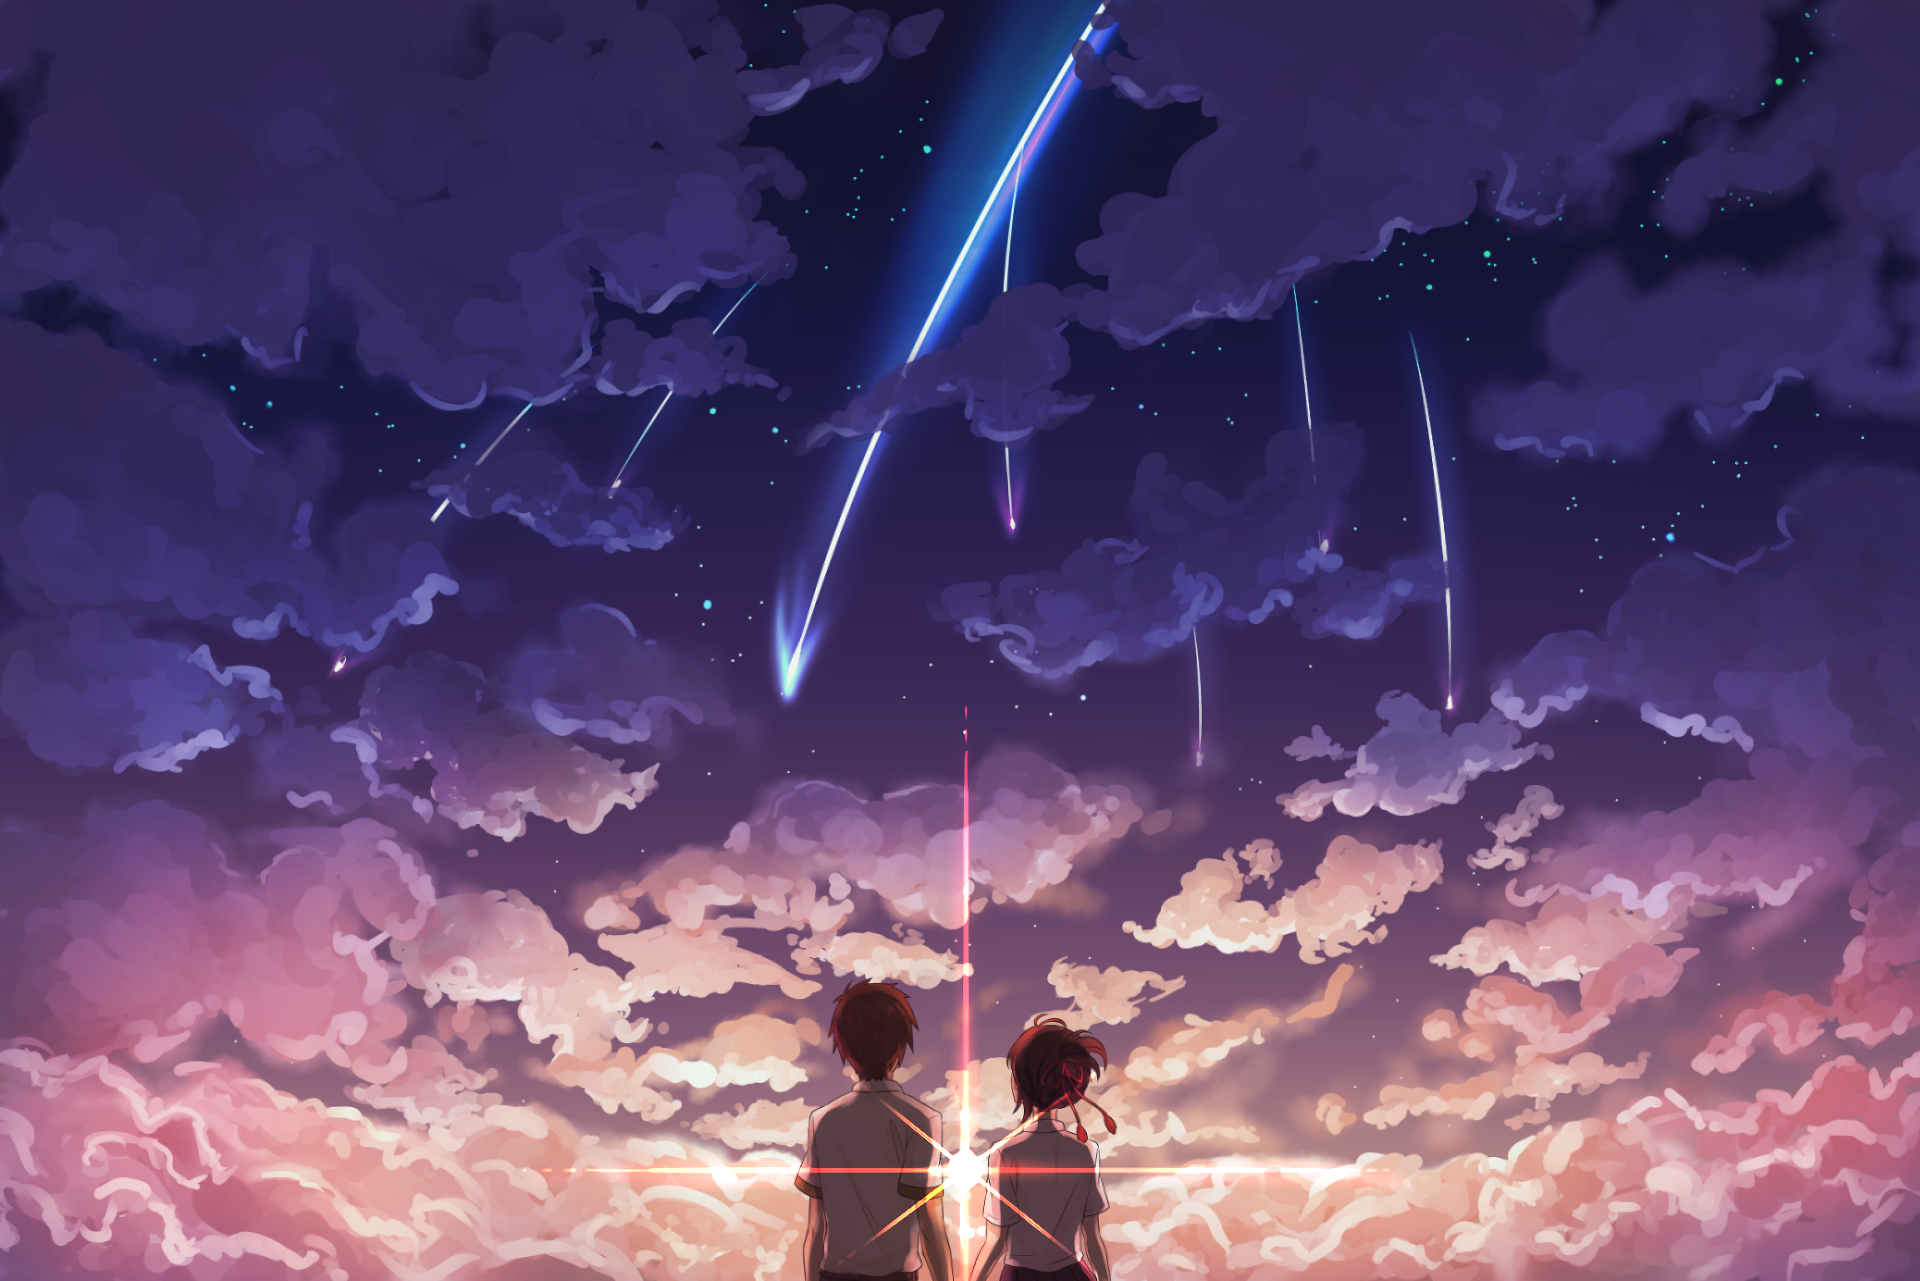 Makoto Shinkai Kimi No Na Wa Wallpaper Full HD Free